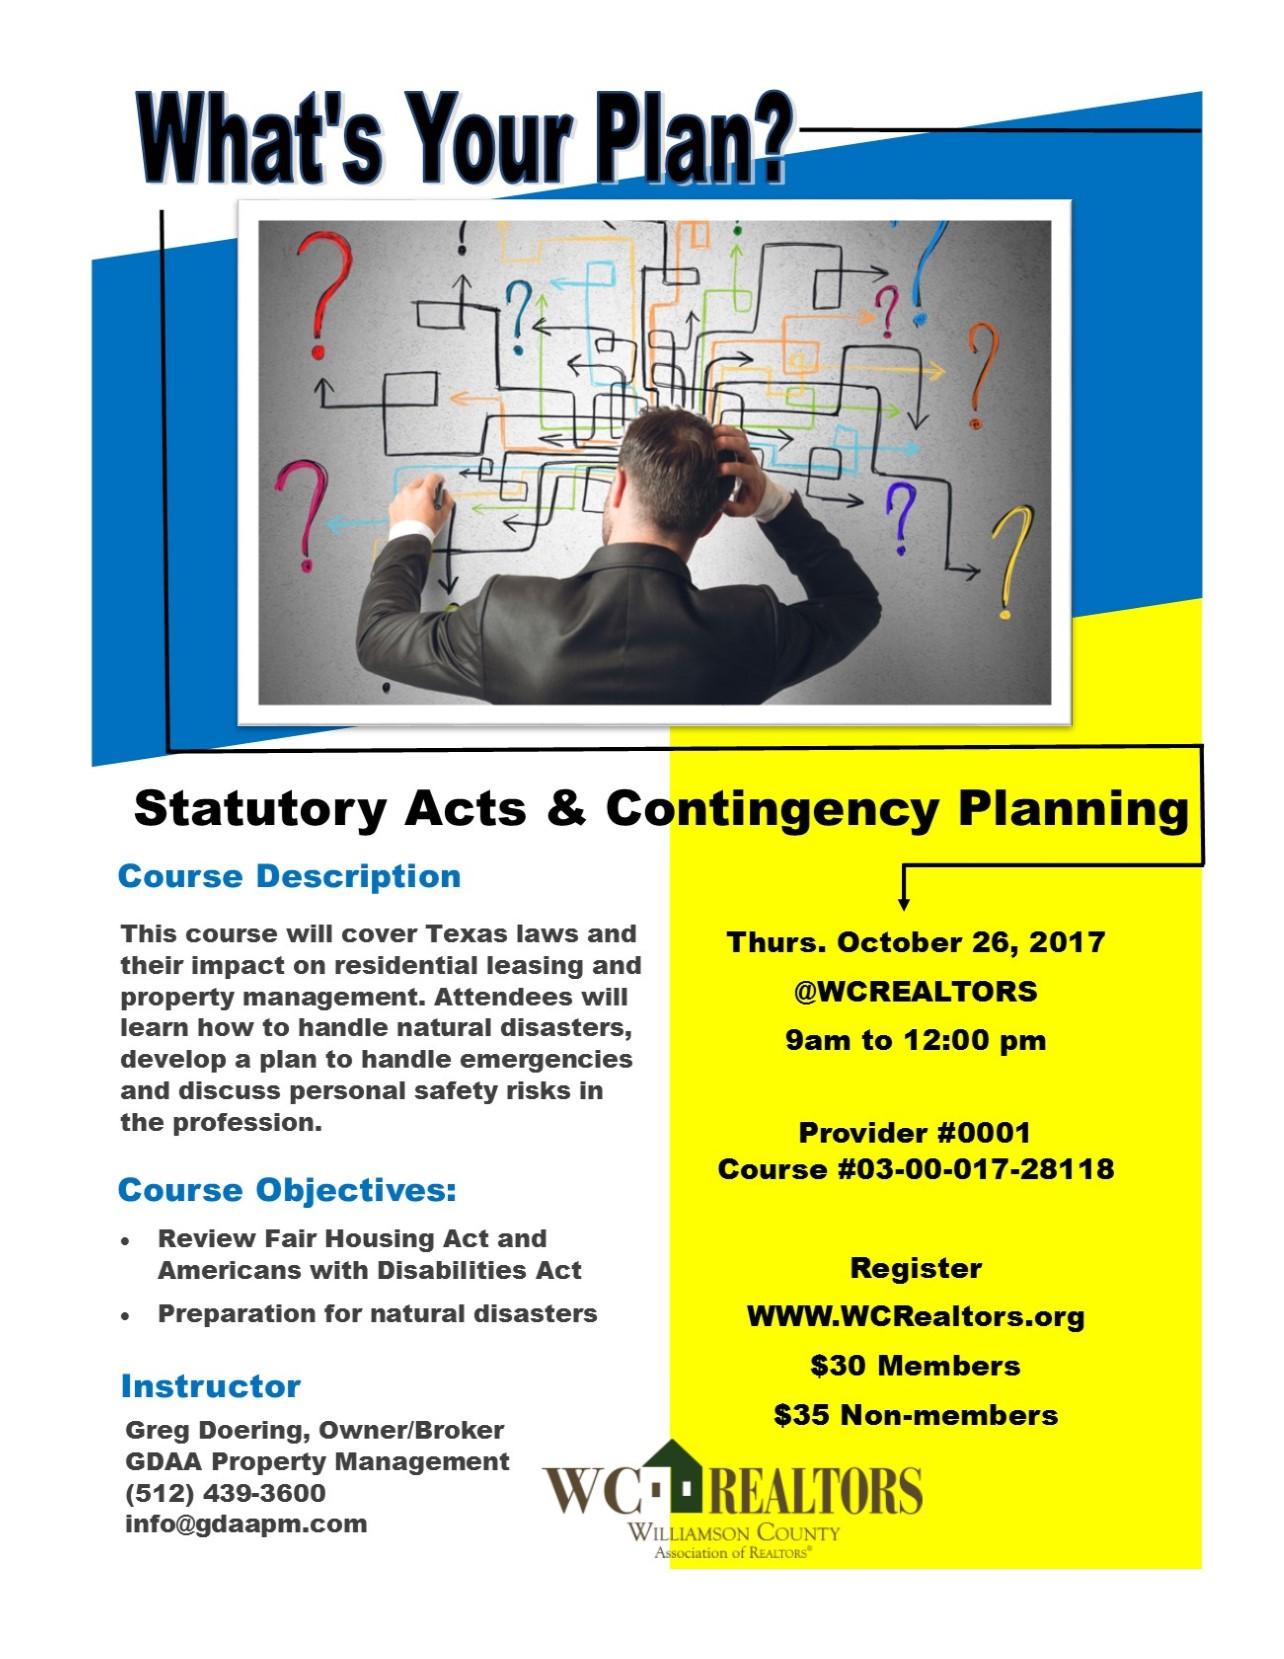 Property management education statutory acts contingency planning 3 hour ce credit 1betcityfo Choice Image